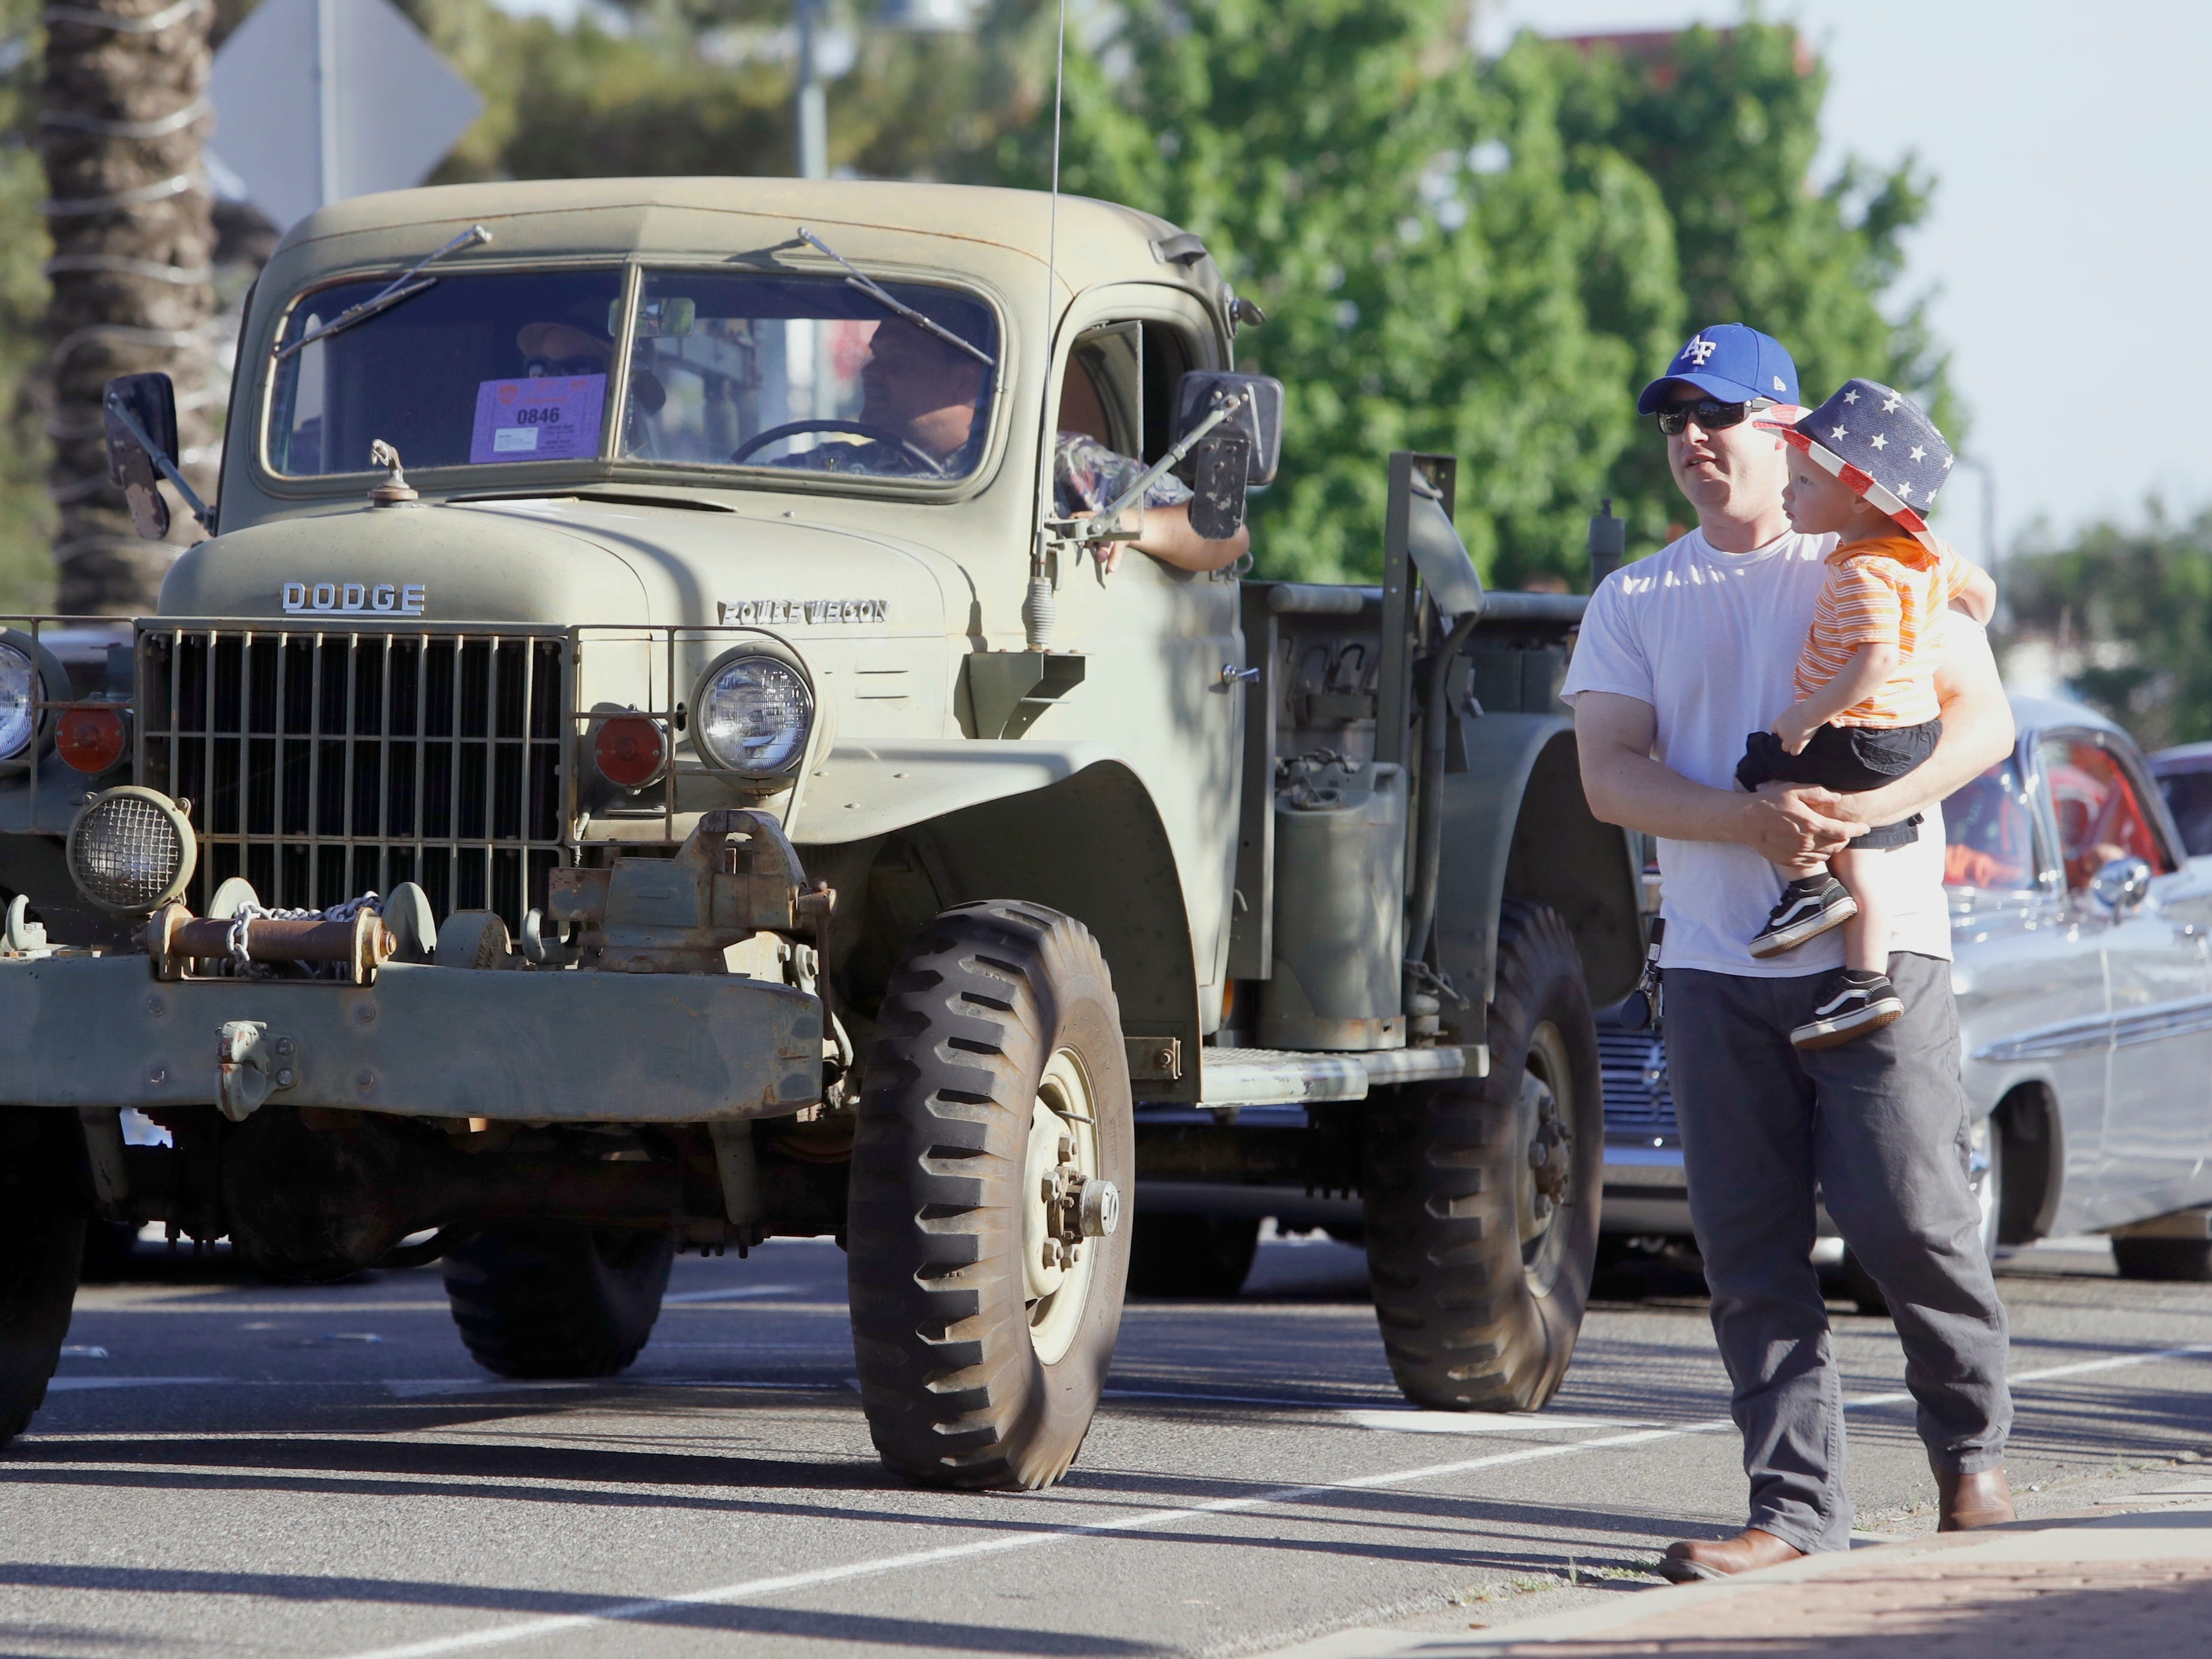 Devon Smith of Redding holds his 20-month-old son Beckett as the Friday Night Cruise gets underway during the 2019 Kool April Nites classic car show in Redding. This was Beckett's first visit to the annual cruise.